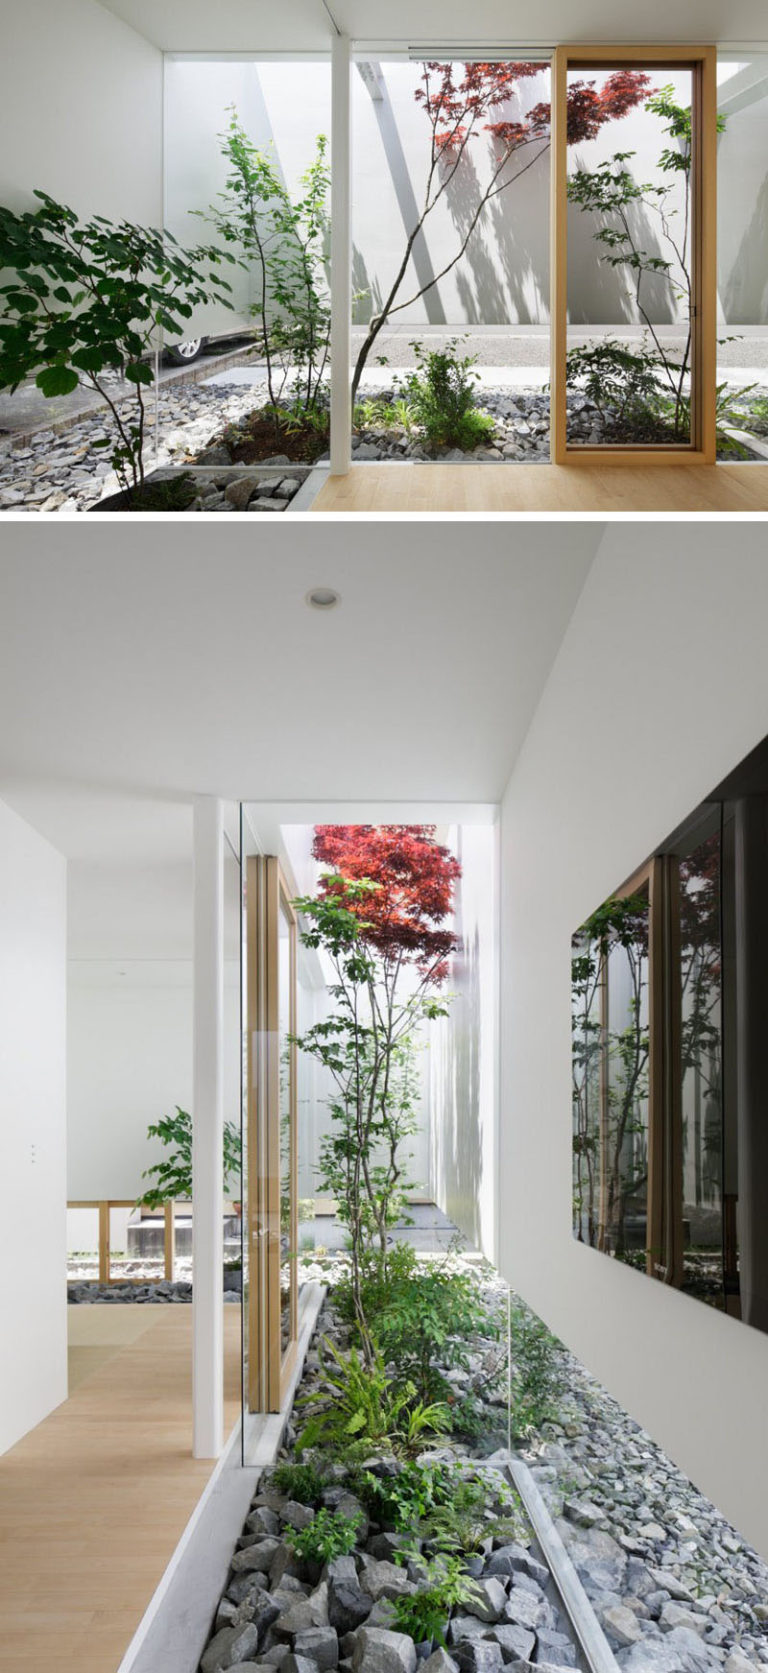 11 Inspirational Rock Gardens To Get You Planning Your Garden // This rock garden exists both inside and outside of this Japanese house.